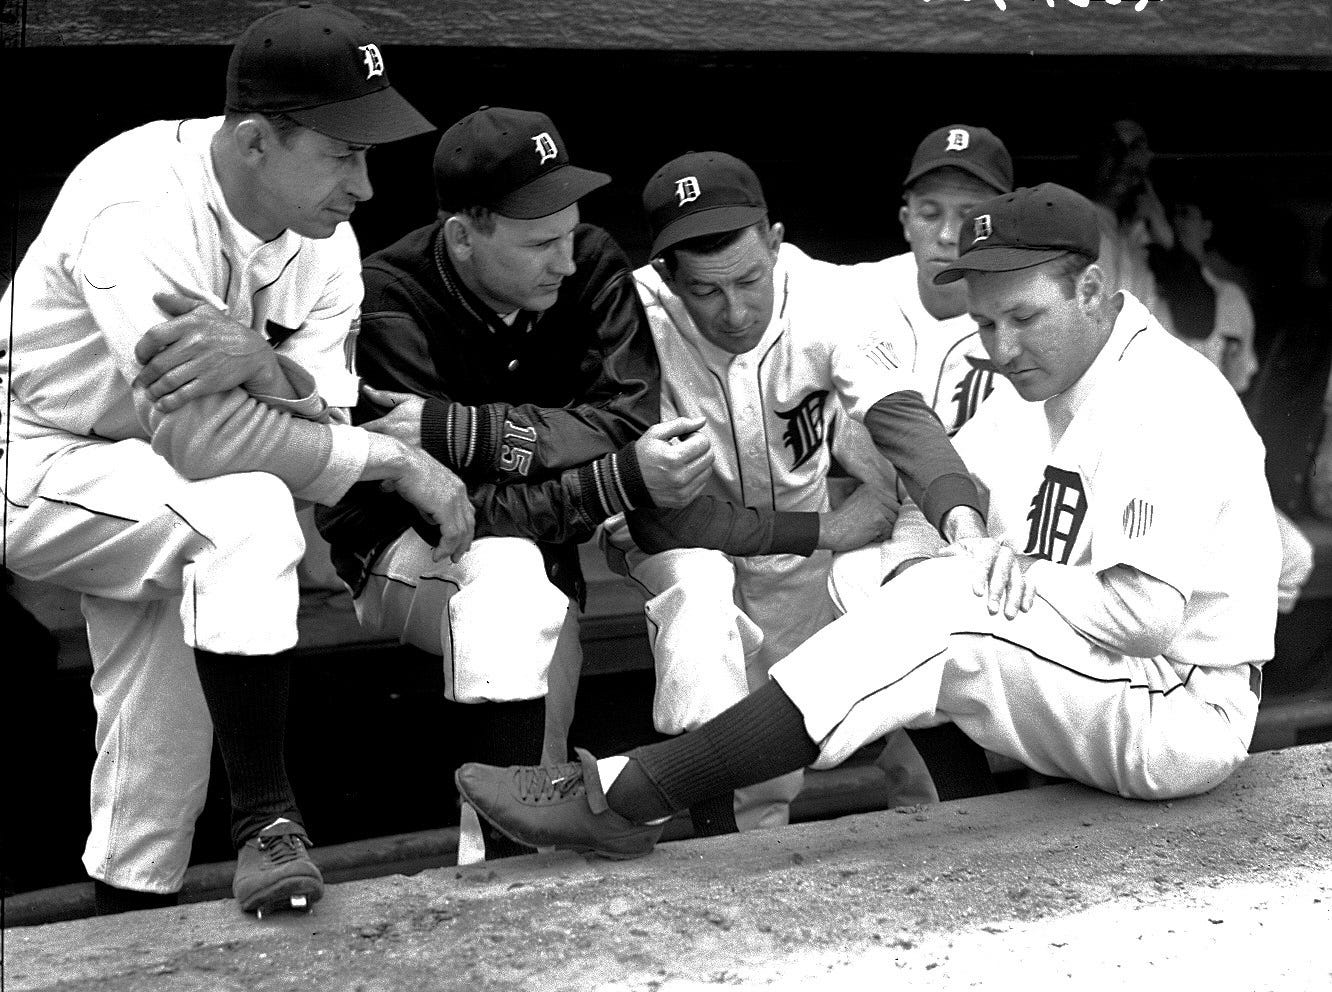 Tigers first baseman Rudy York  shows his knee, which kept him out of the Army, to a group of teammates, including Chuck Hostetler, Dizzy Trout, Doc Cramer and Jimmy Outlaw.